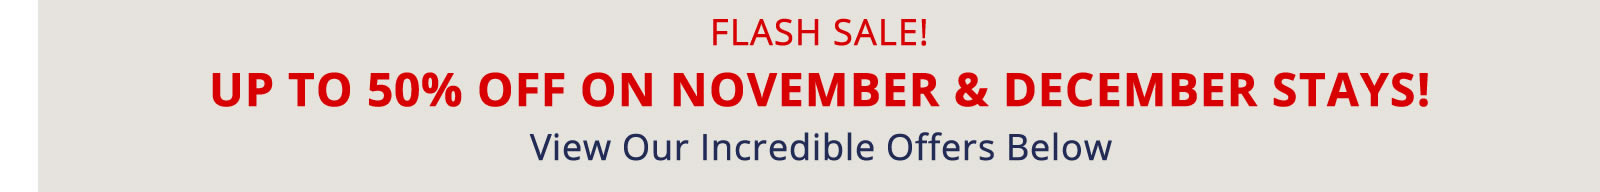 FLASH SALE! UP TO 50% OFF NOVEMBER STAYS!